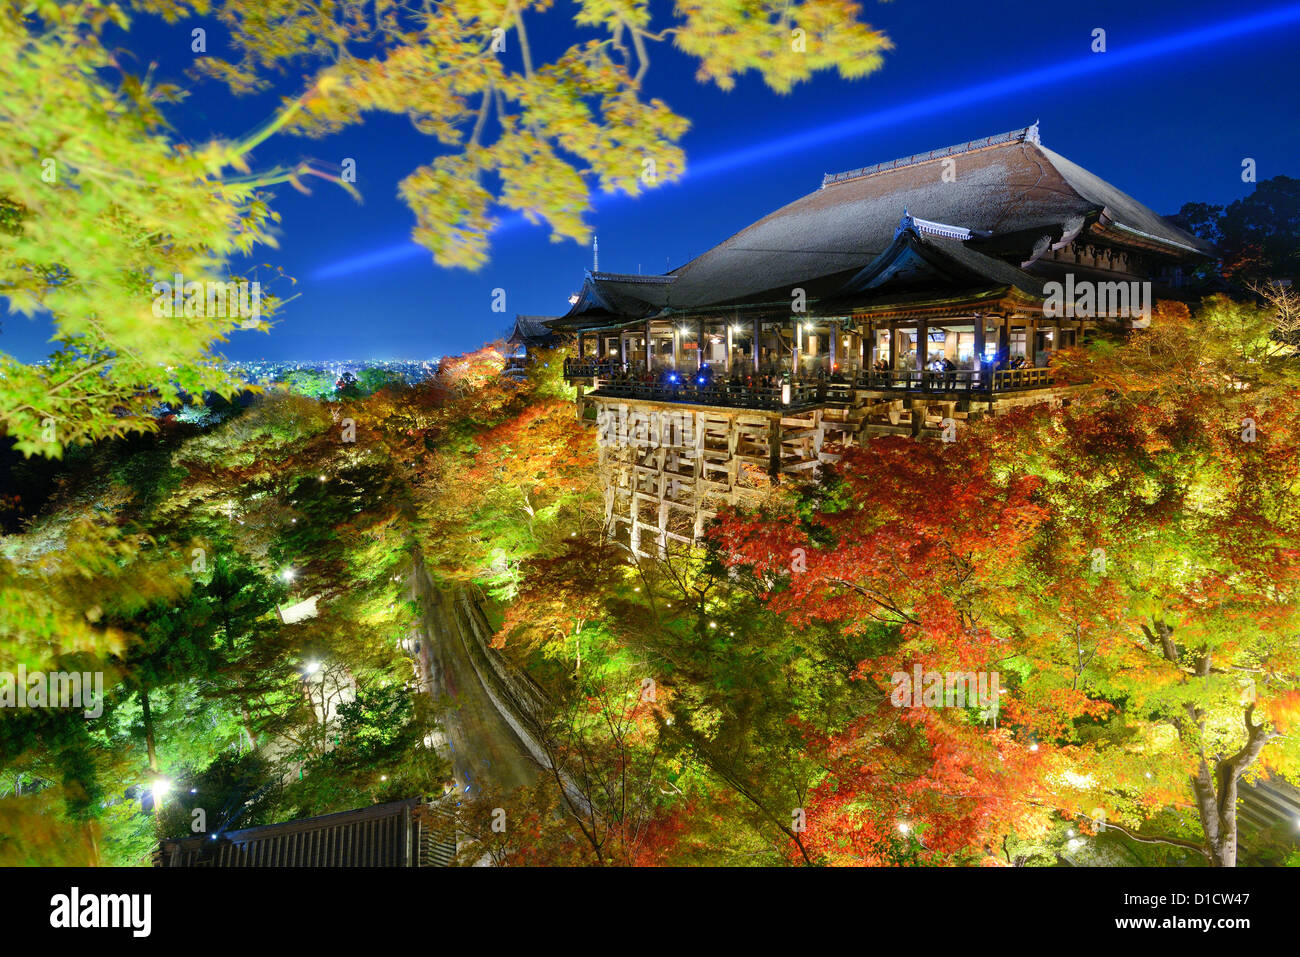 Kiyomizu-dera Temple in Kyoto, japan with nighttime illumination. - Stock Image